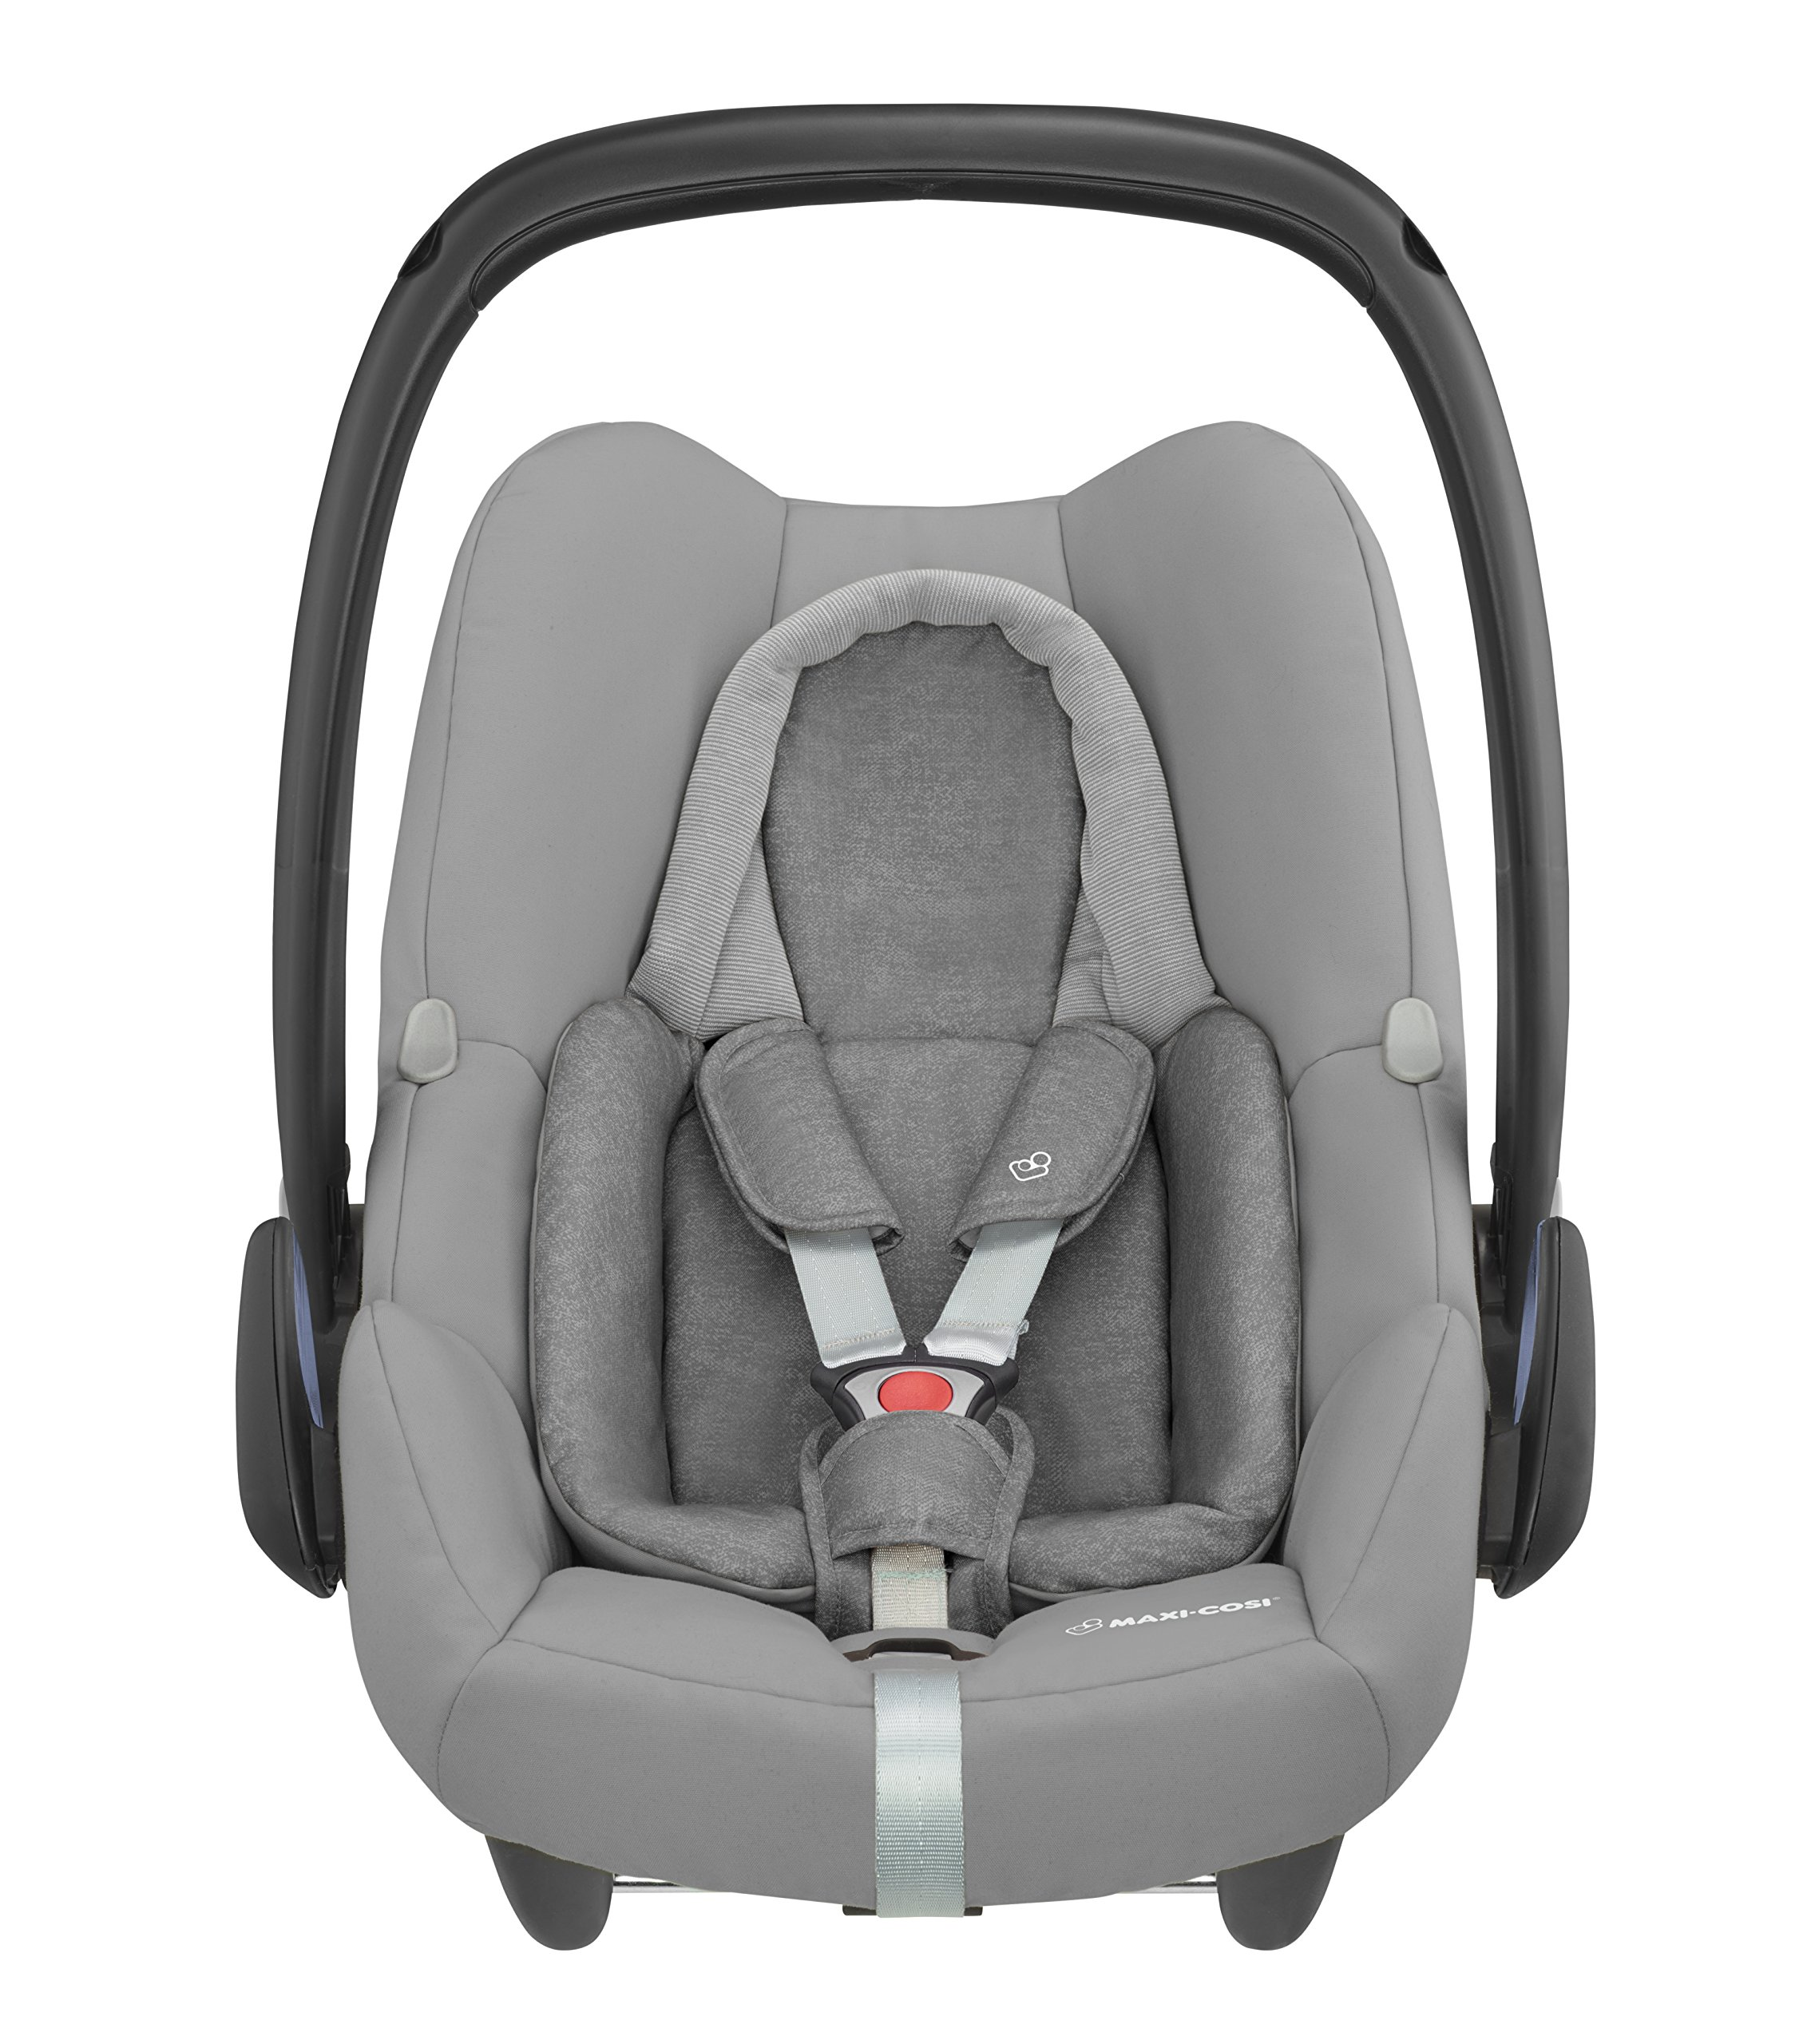 Maxi-Cosi Rock i-Size Baby Car Seat, Nomad Grey with Raincover for Baby Car Seat, Transparent and Back Seat Car Mirror Maxi-Cosi High safety rating: complies with the latest i-Size (R129) car seat legislation Baby-hug inlay offers a better fit and laying position for new-born's Designed to fit onto the maxi-cosi pebble plus, pebble and cabriofix baby car seats 3